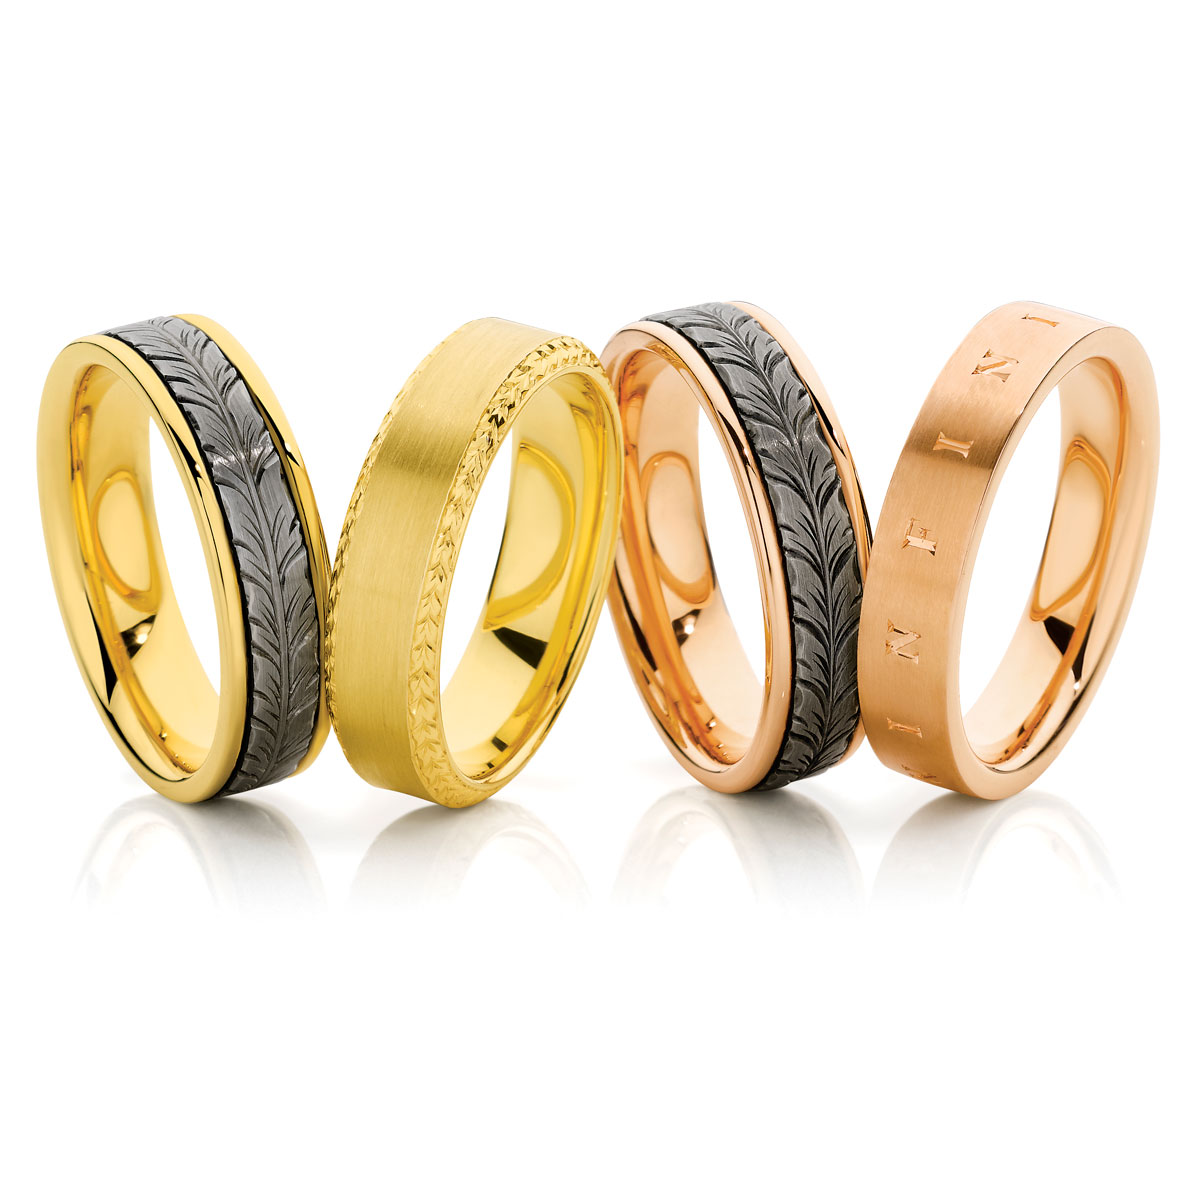 Men's Engraved Wedding Bands